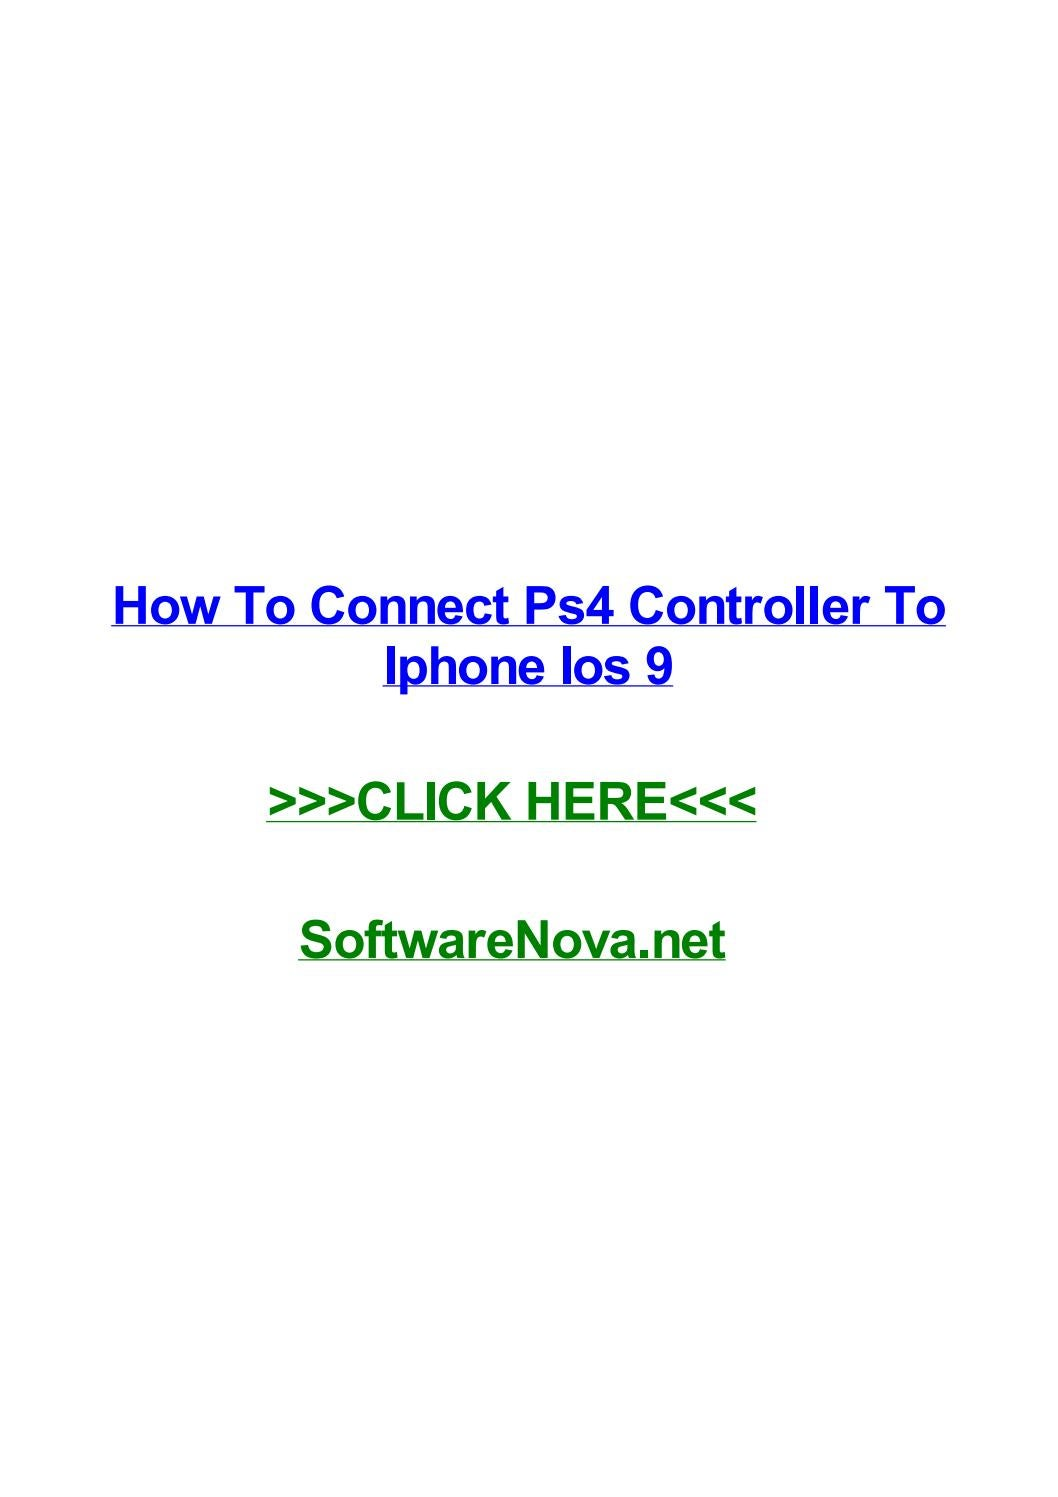 How to pair ps4 controller to iphone without jailbreak | How to